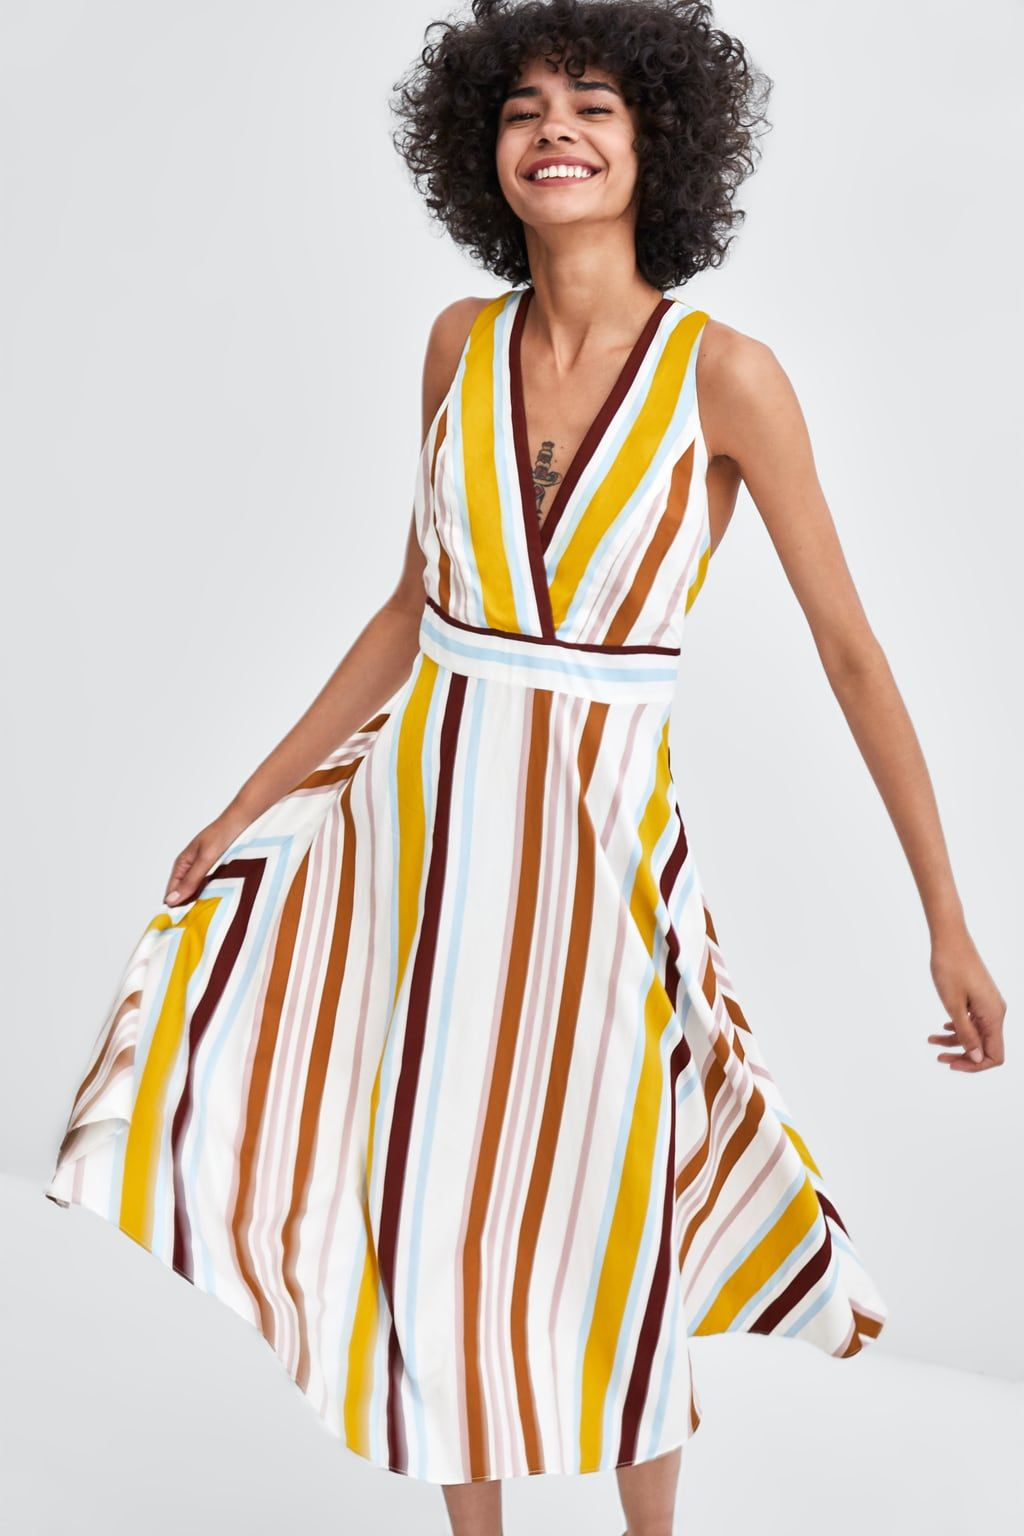 af082a1f0fec Striped midi dress in 2019 | Dresses | Striped midi dress, Dresses ...